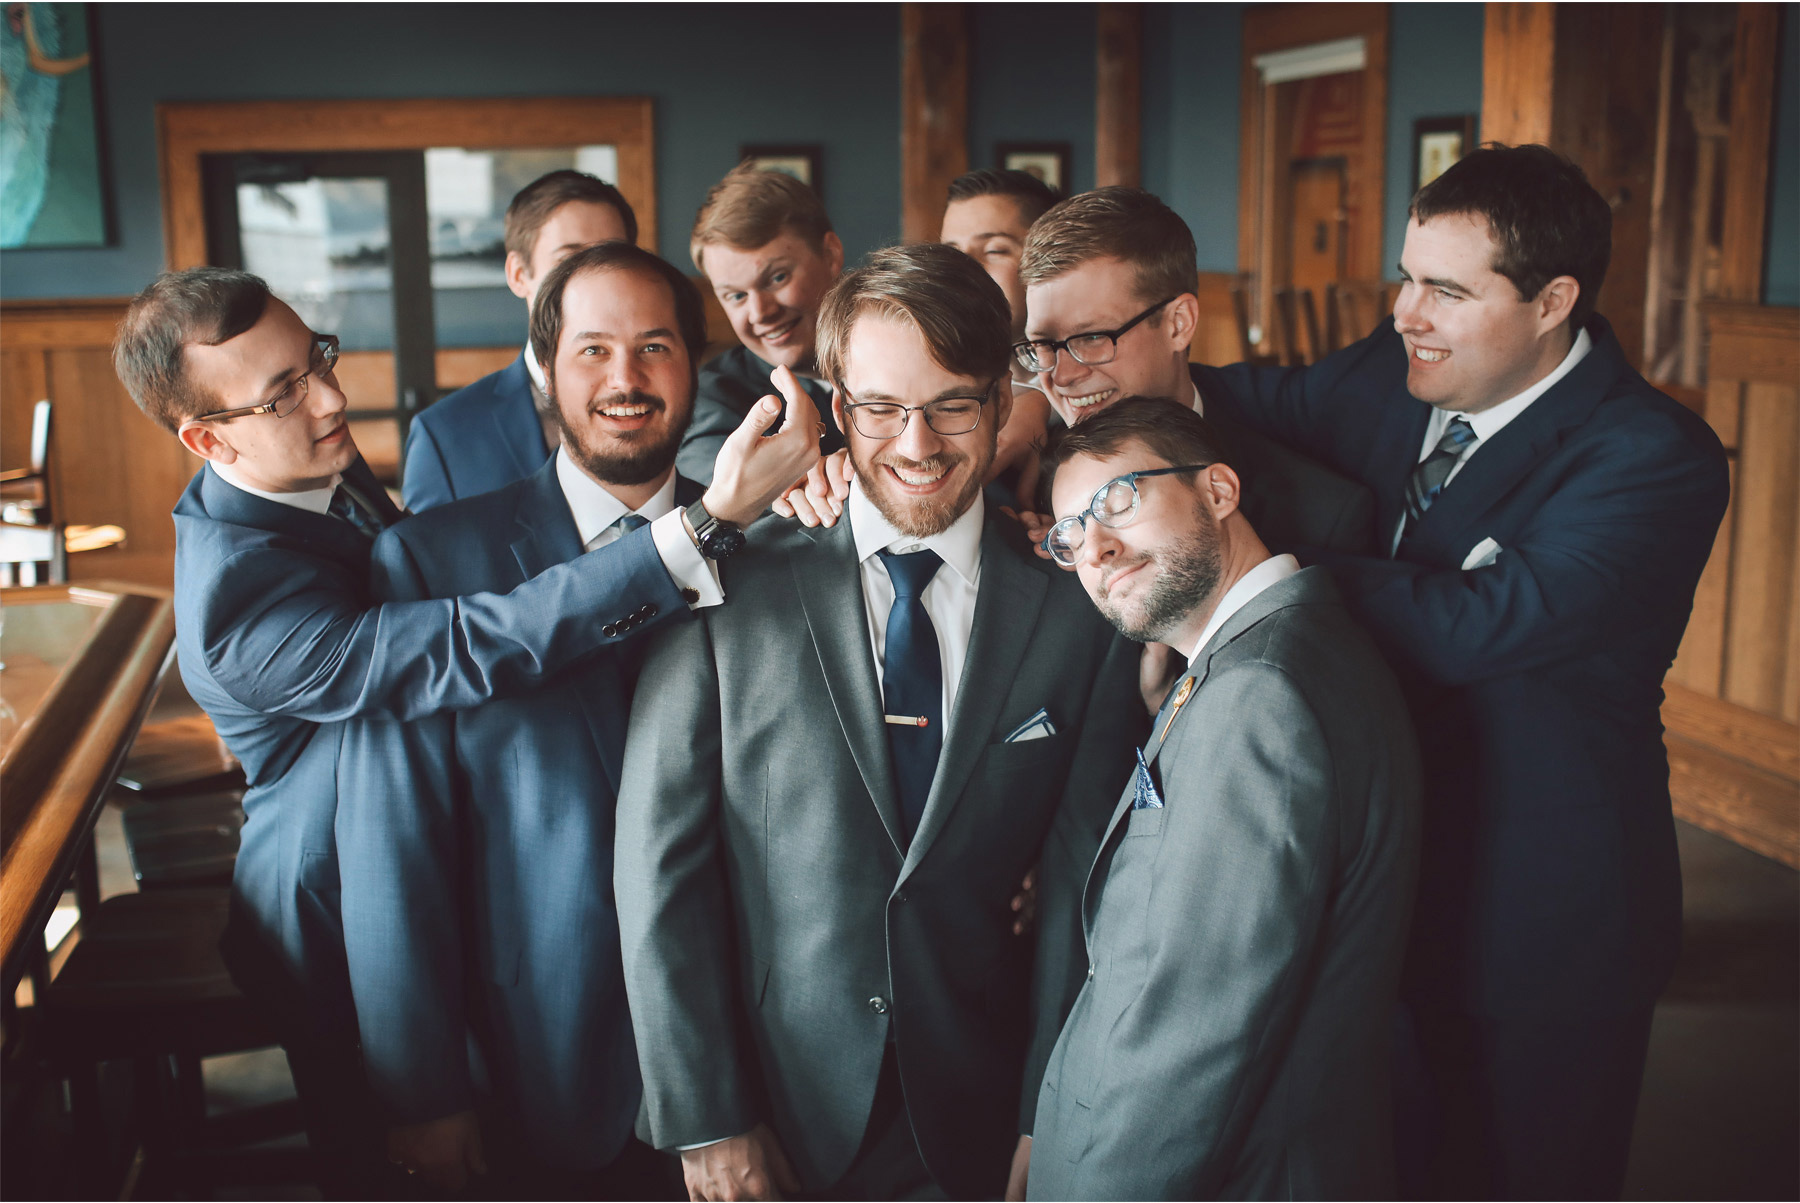 07-Minneapolis-Wedding-Photography-by-Vick-Solar-Arts-Building-Groomsmen-Group-Libby-and-Nathan.jpg